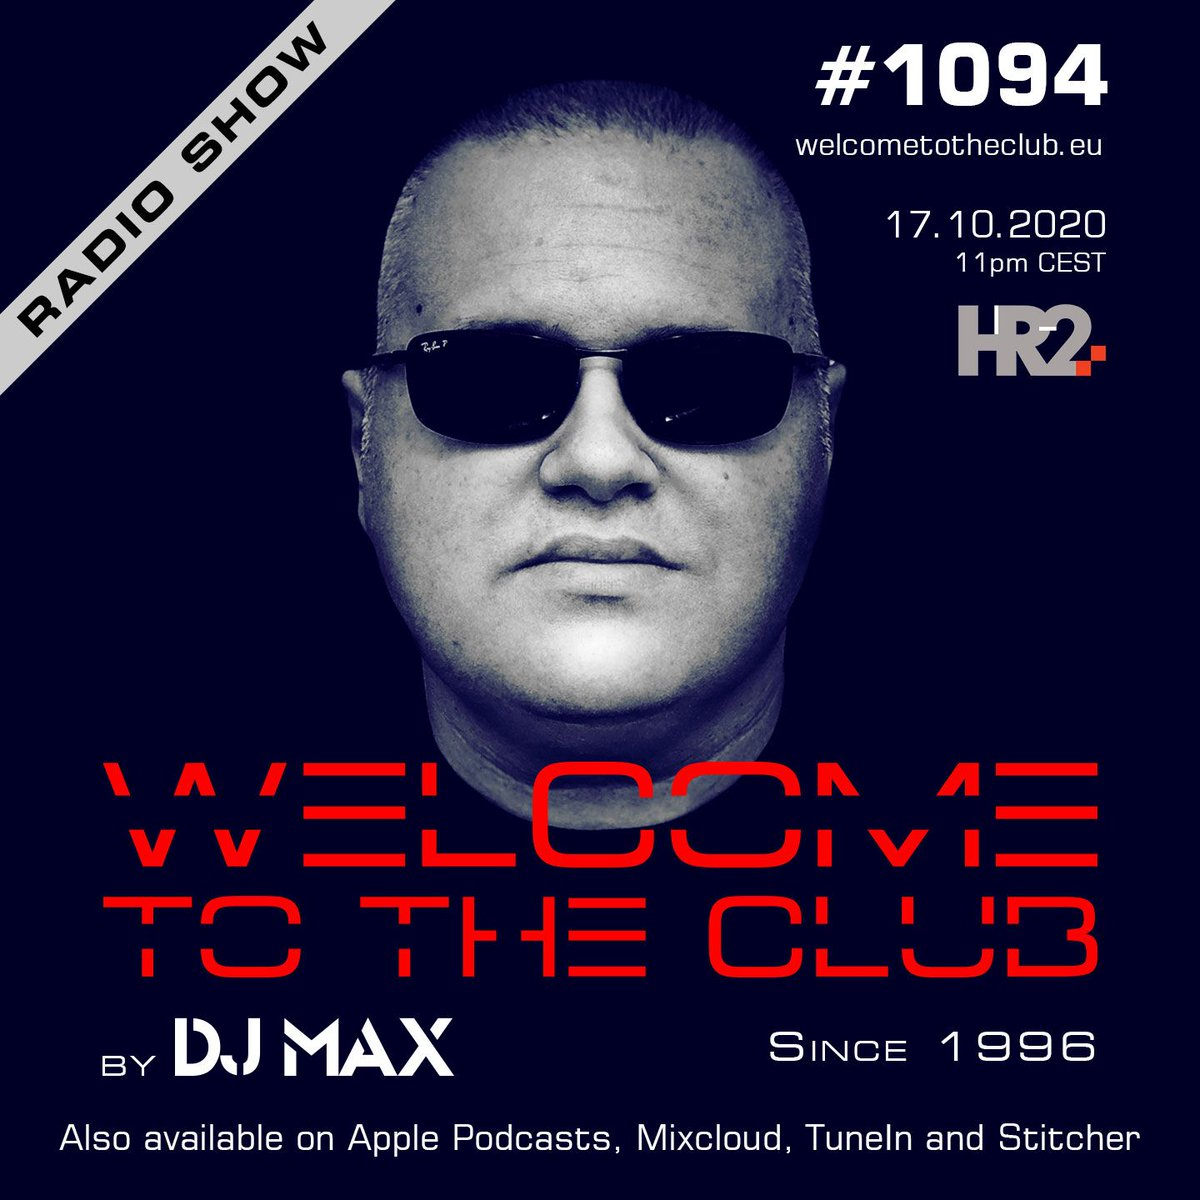 check out my Welcome To The Club #radioshow episode #1094 | premiered on HR2 last Saturday https://t.co/nqTCvqiIBp  #welcometotheclub  #djmax #electronicmusic #house #techhouse #clubbing #djlife #dj #radio #producer #croatia #ibiza #amsterdam #italy #uk #usa https://t.co/g3O7fjKejh